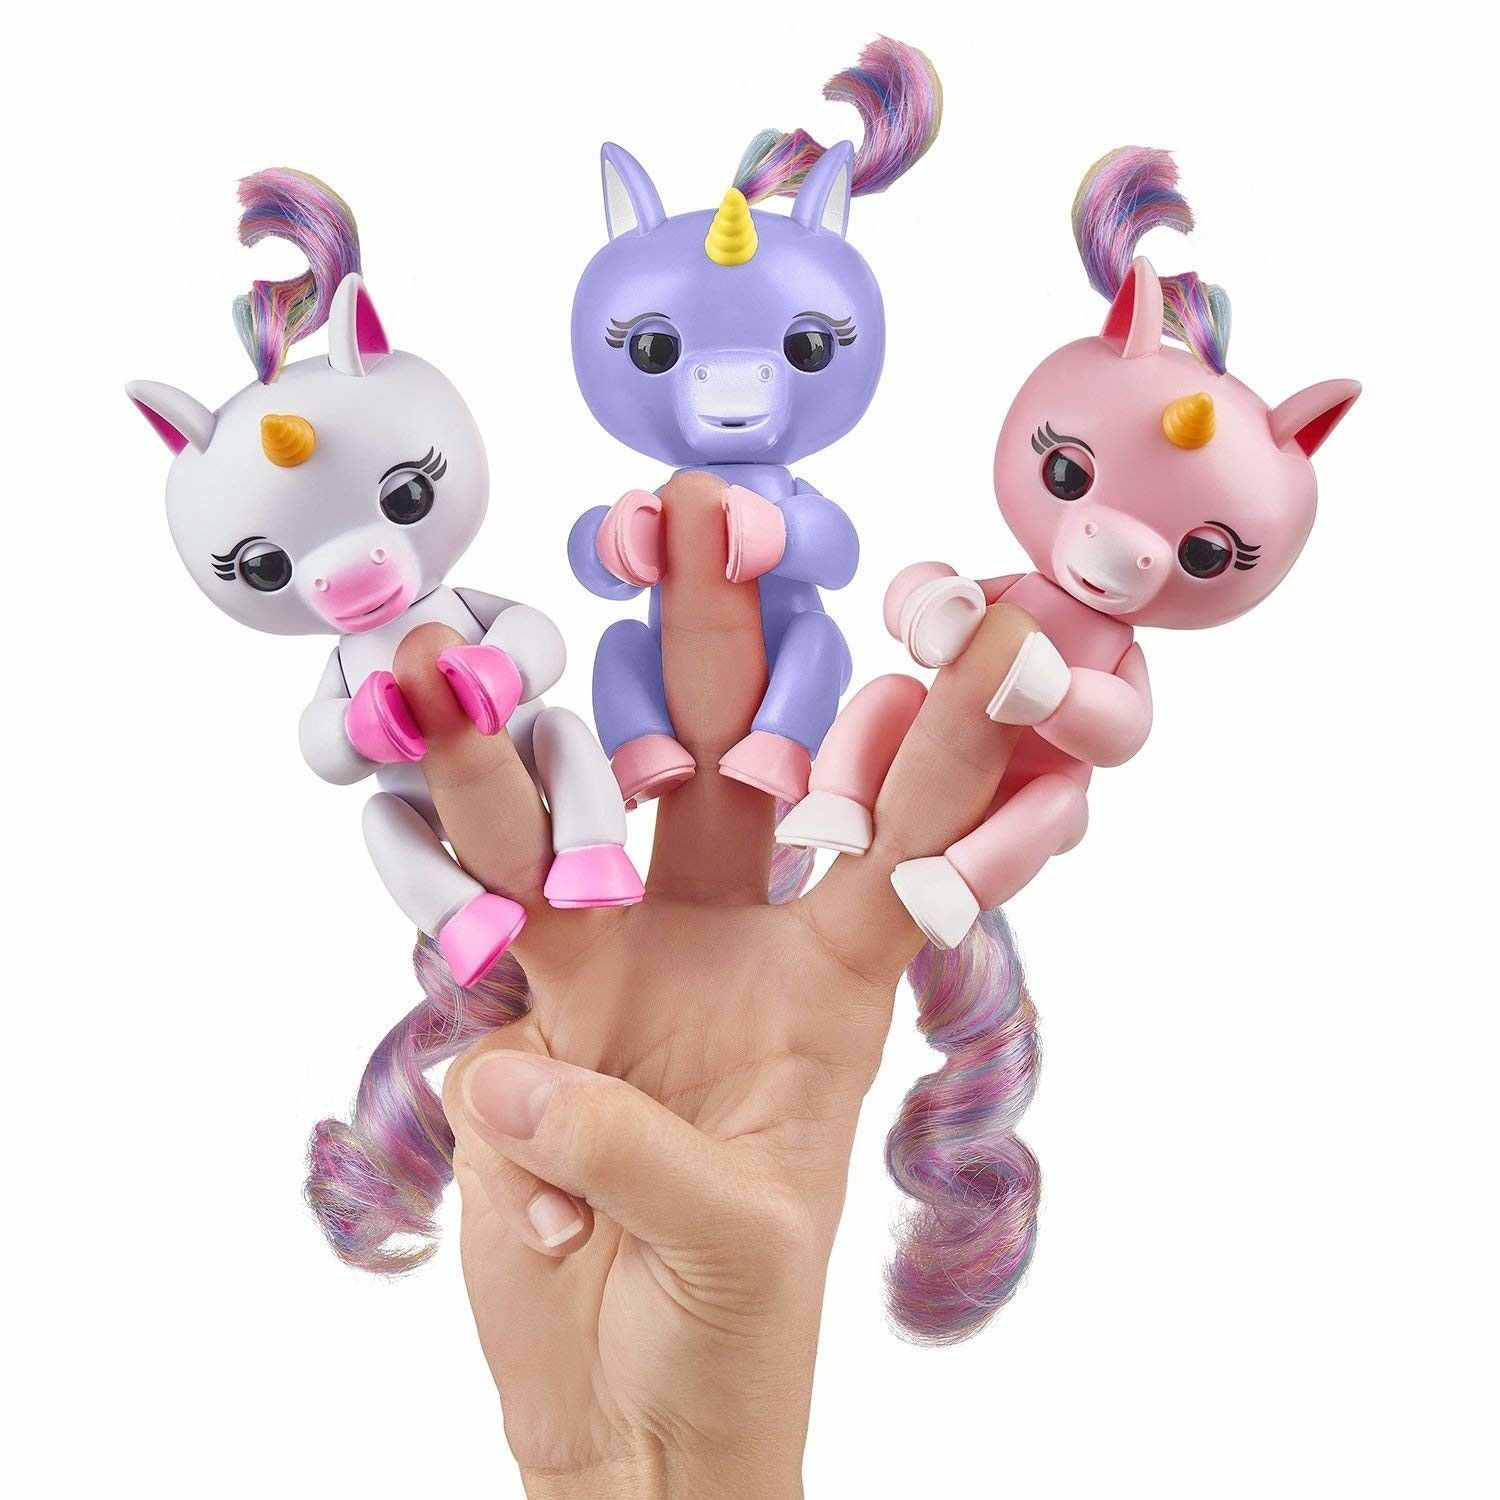 Fingerlings Baby Unicorn - Gemma (Pink with Rainbow Mane and Tail) - Interactive